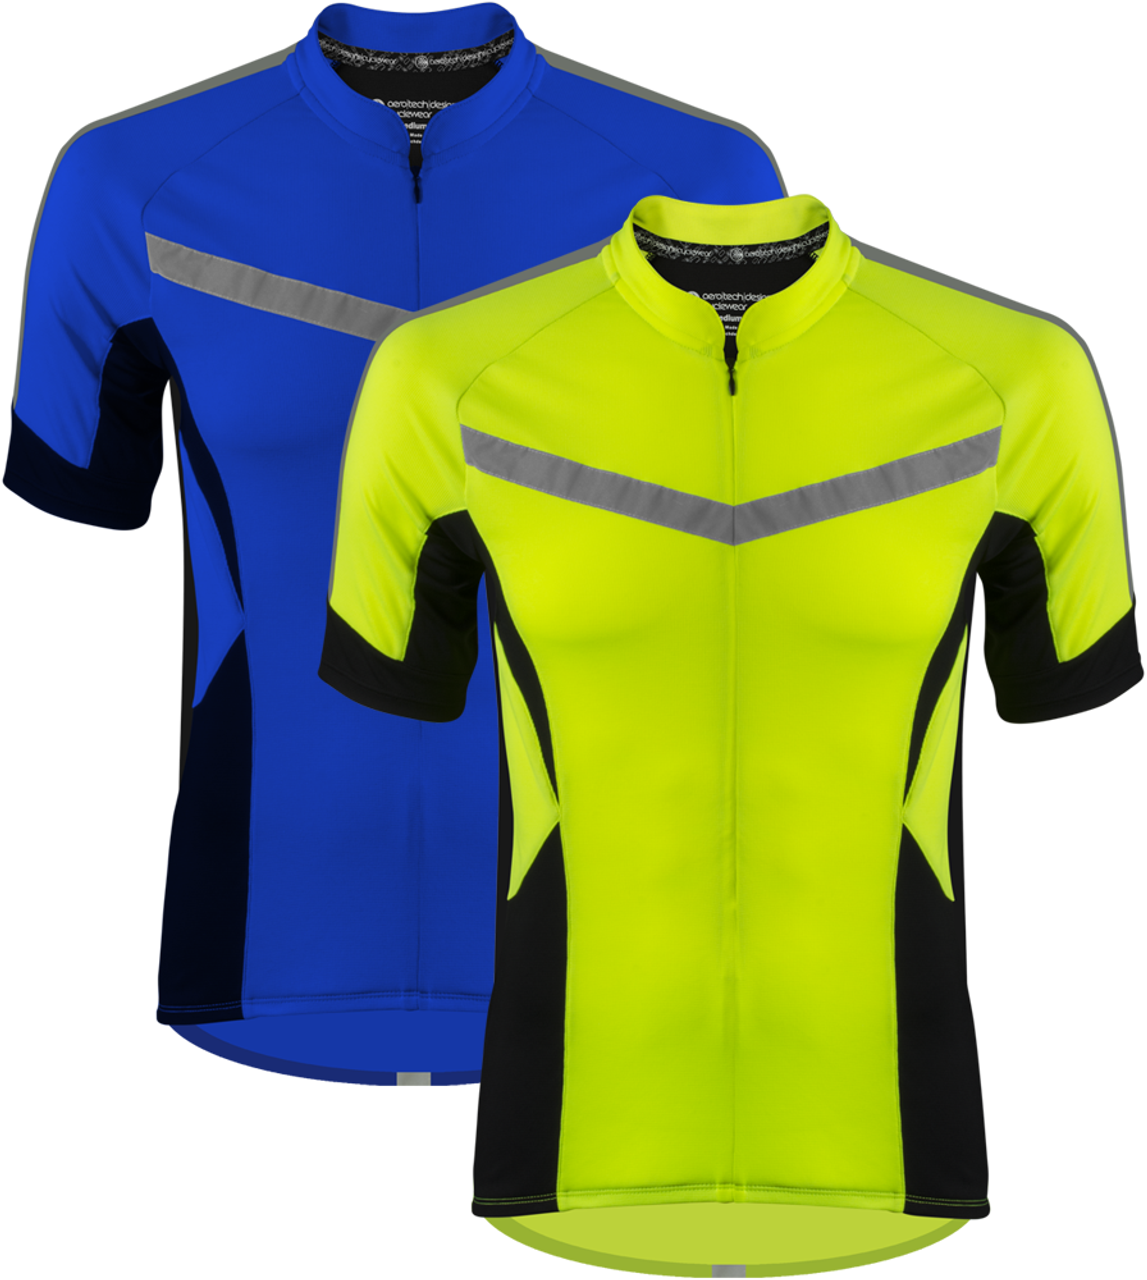 High Vis Reflective Cycling Jersey - Made for Visibility and Safety ... aa4c9448c